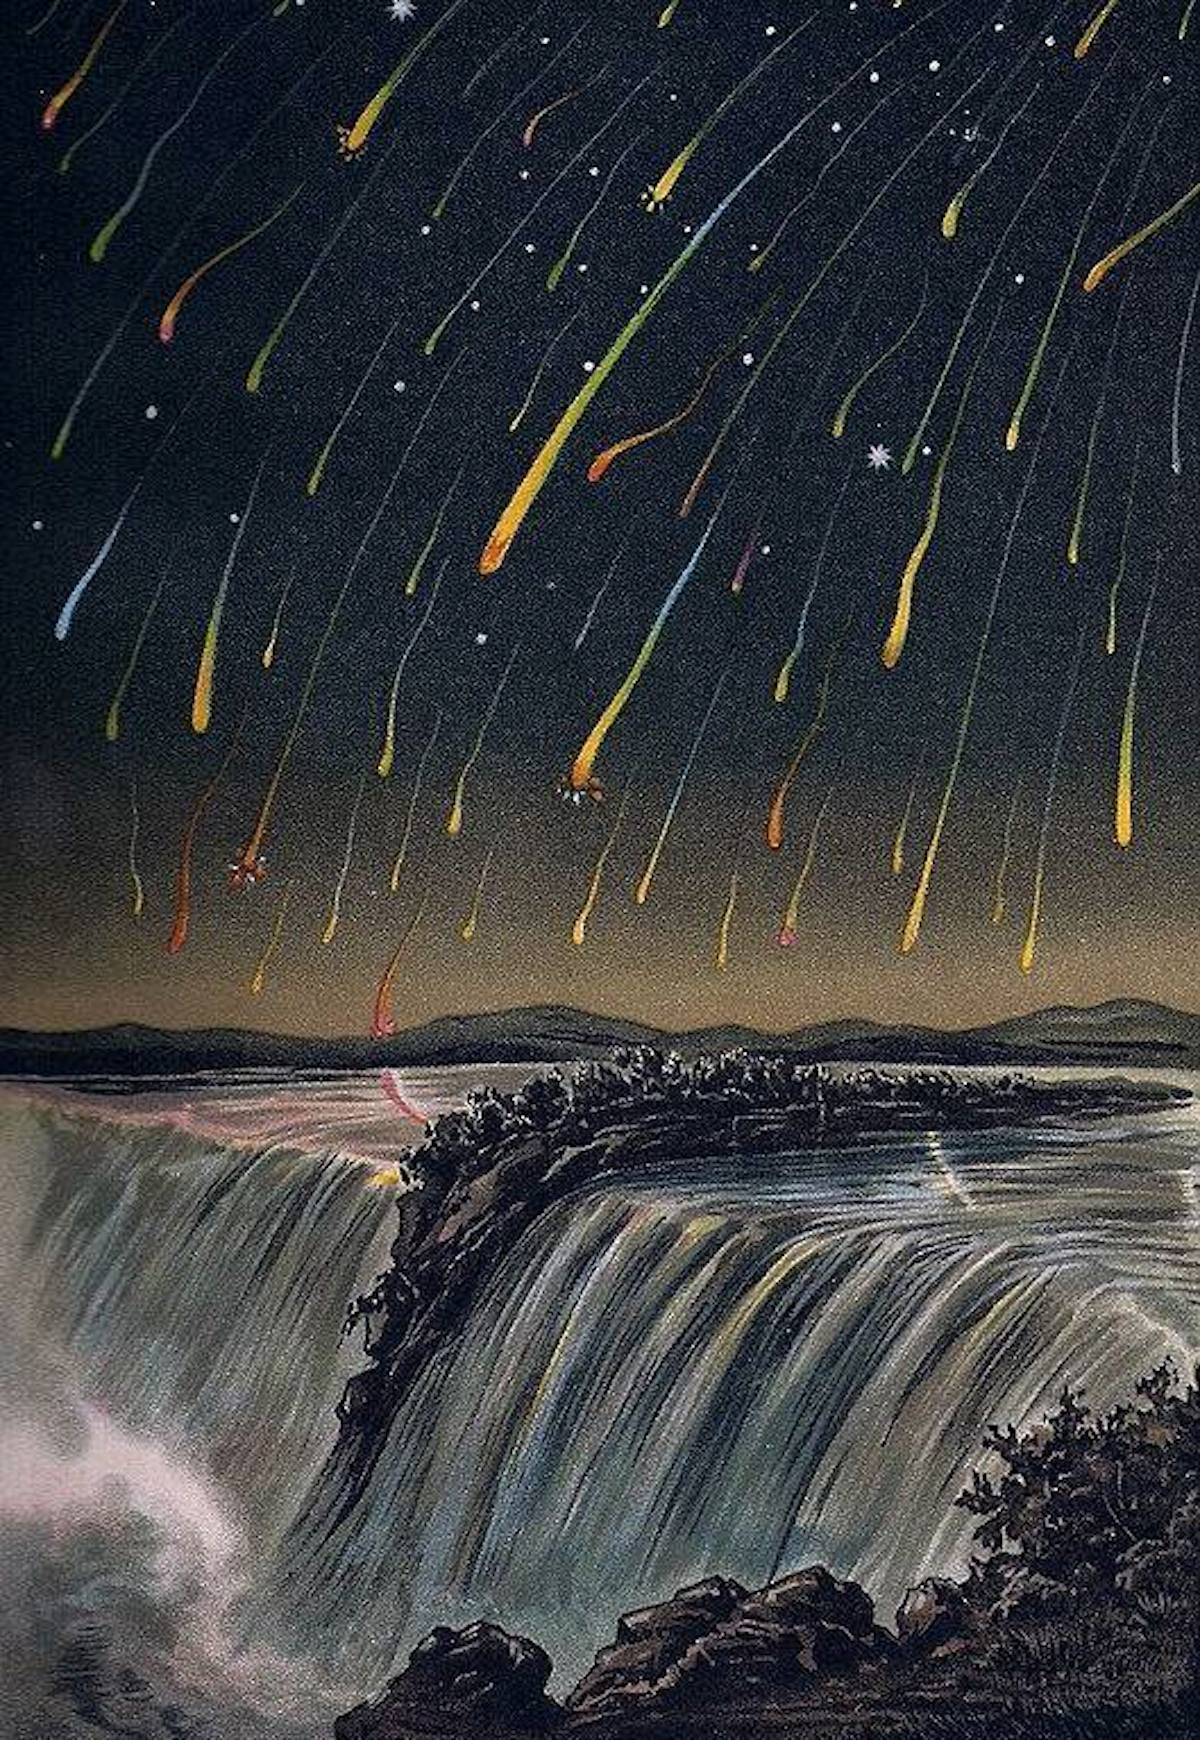 advent 6 Leonid Meteor Storm, as seen over North America on the night of November 12-13, 1833, from E. Weiß's 'Bilderatlas der Sternenwelt'